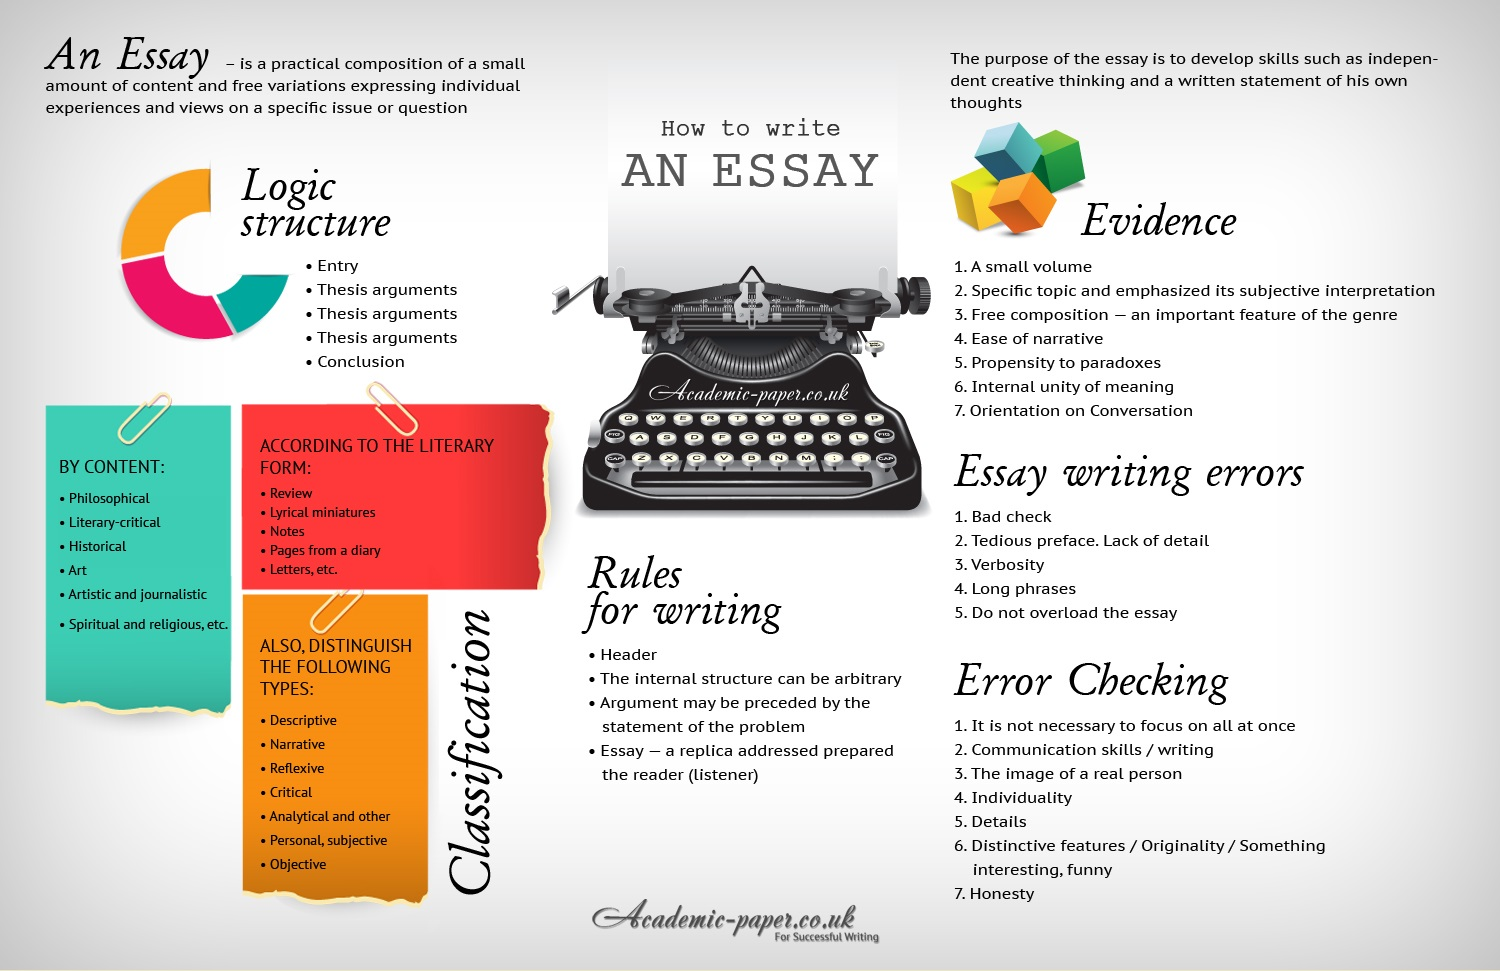 writes essay for you writes essay for you stampangroup eth frac14 eth micro ntilde ntilde eth frac34  how to write an essay academic paper blogthe essay structure is the same but it is